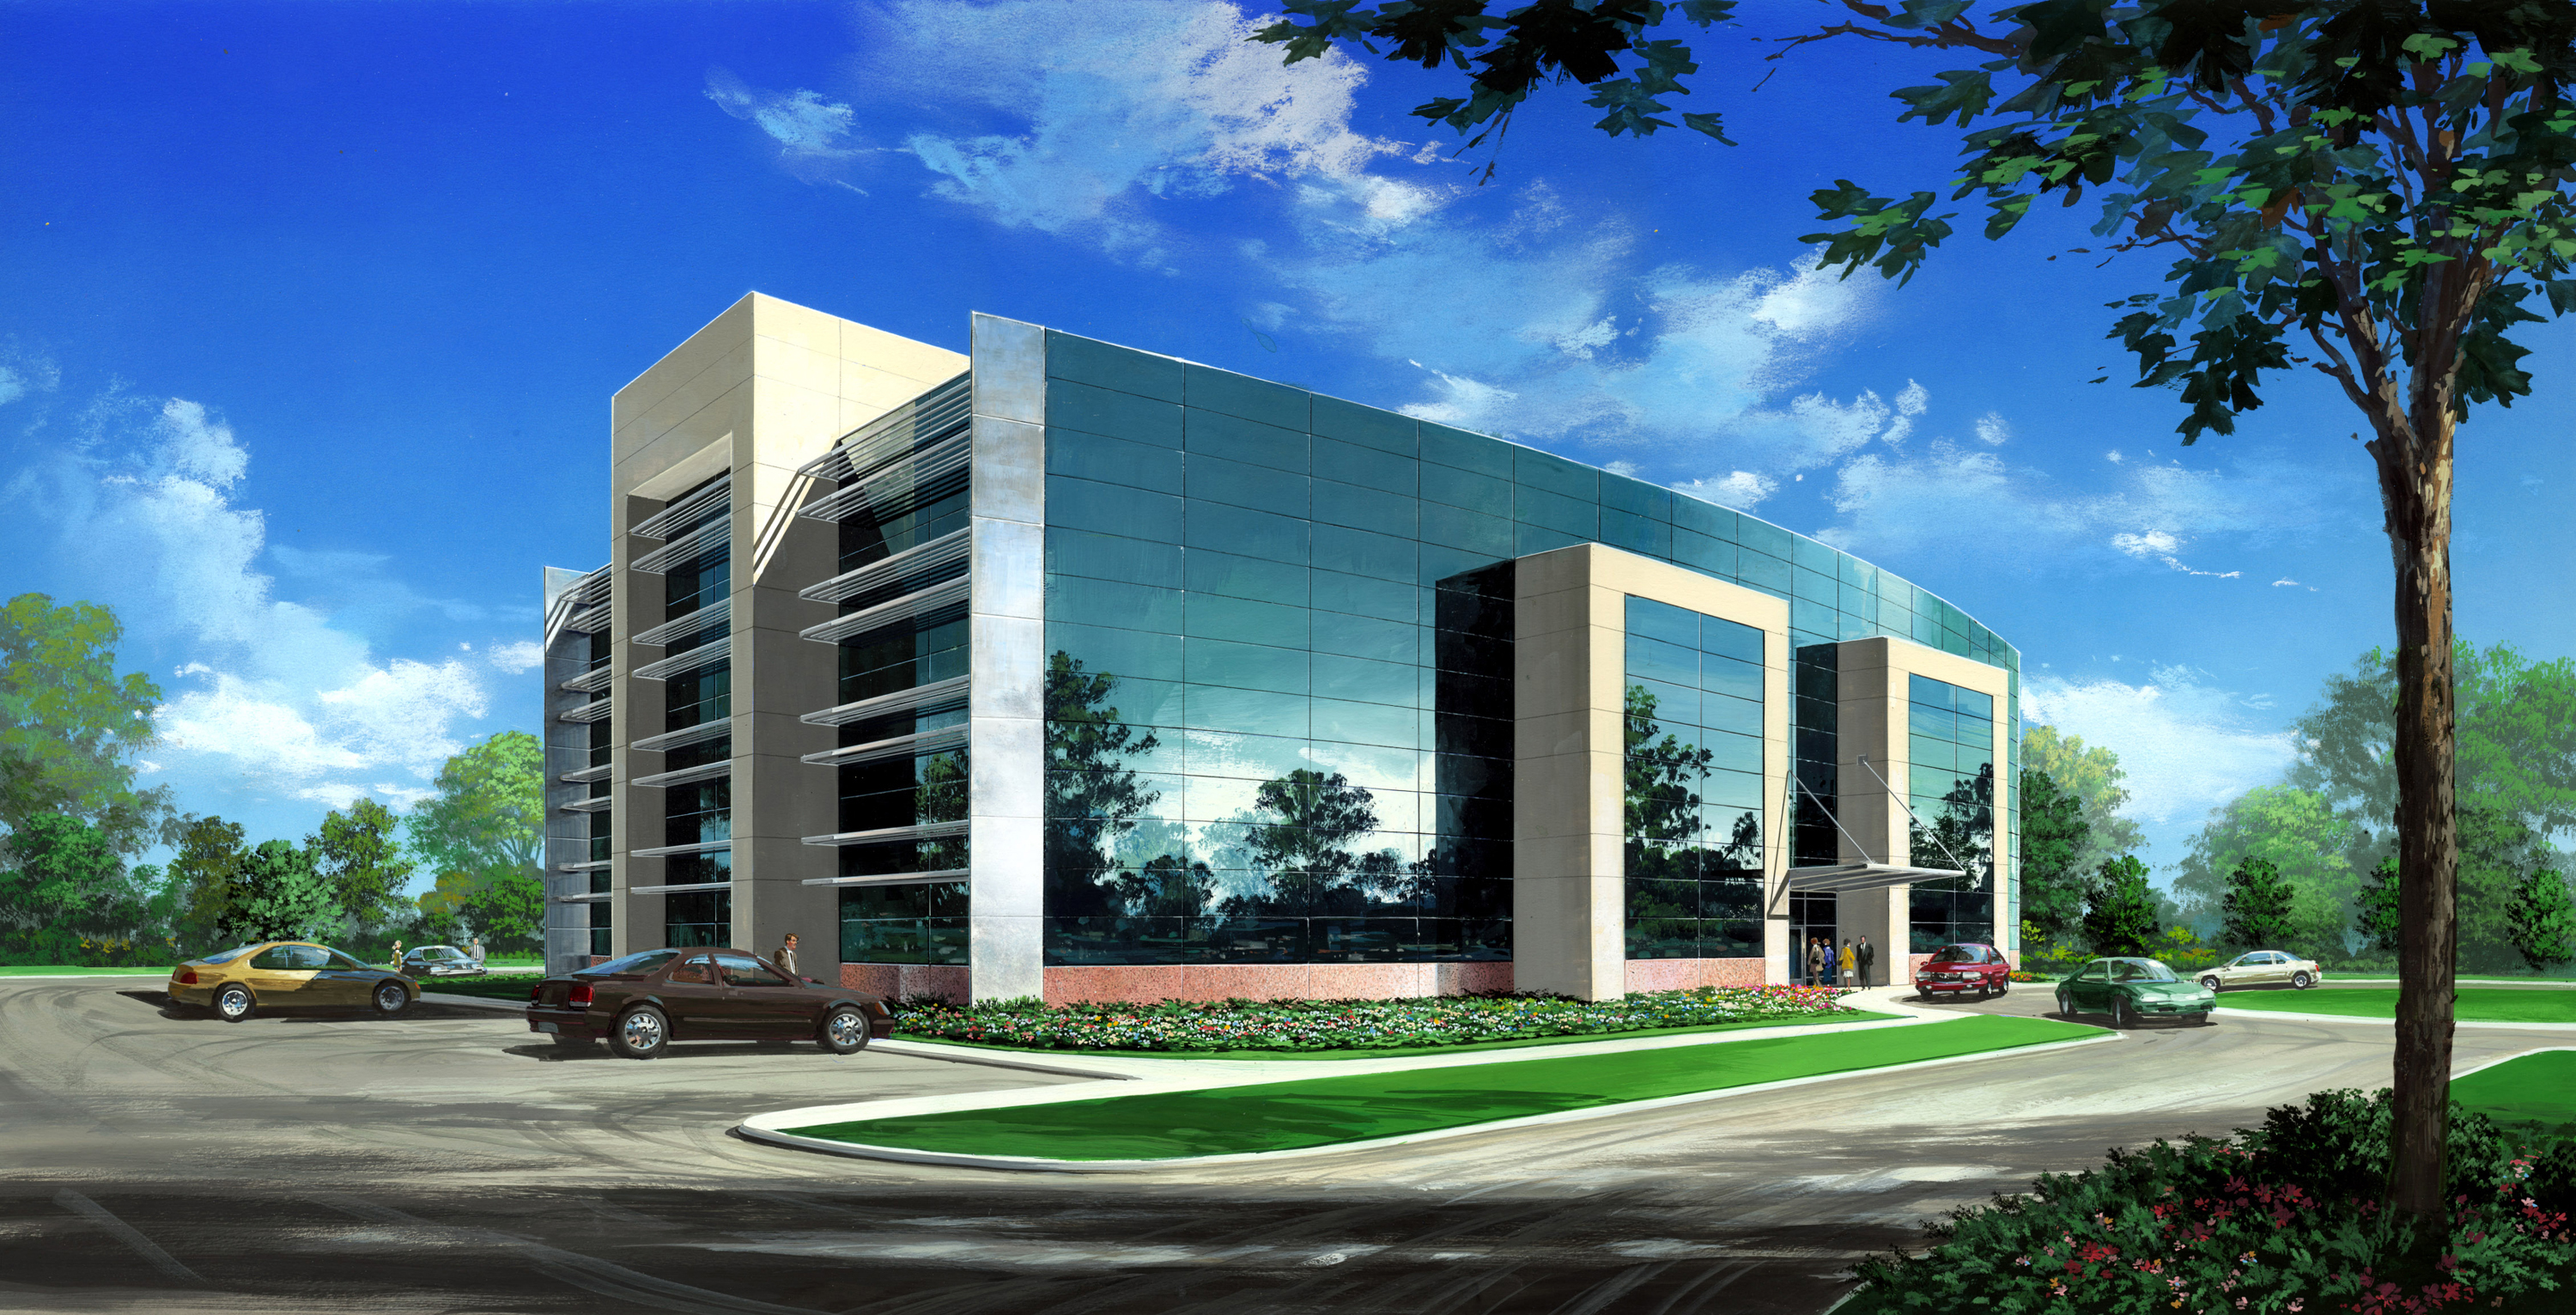 Nasa Amarshall Center To Break Ground June 10 On New: concept buildings